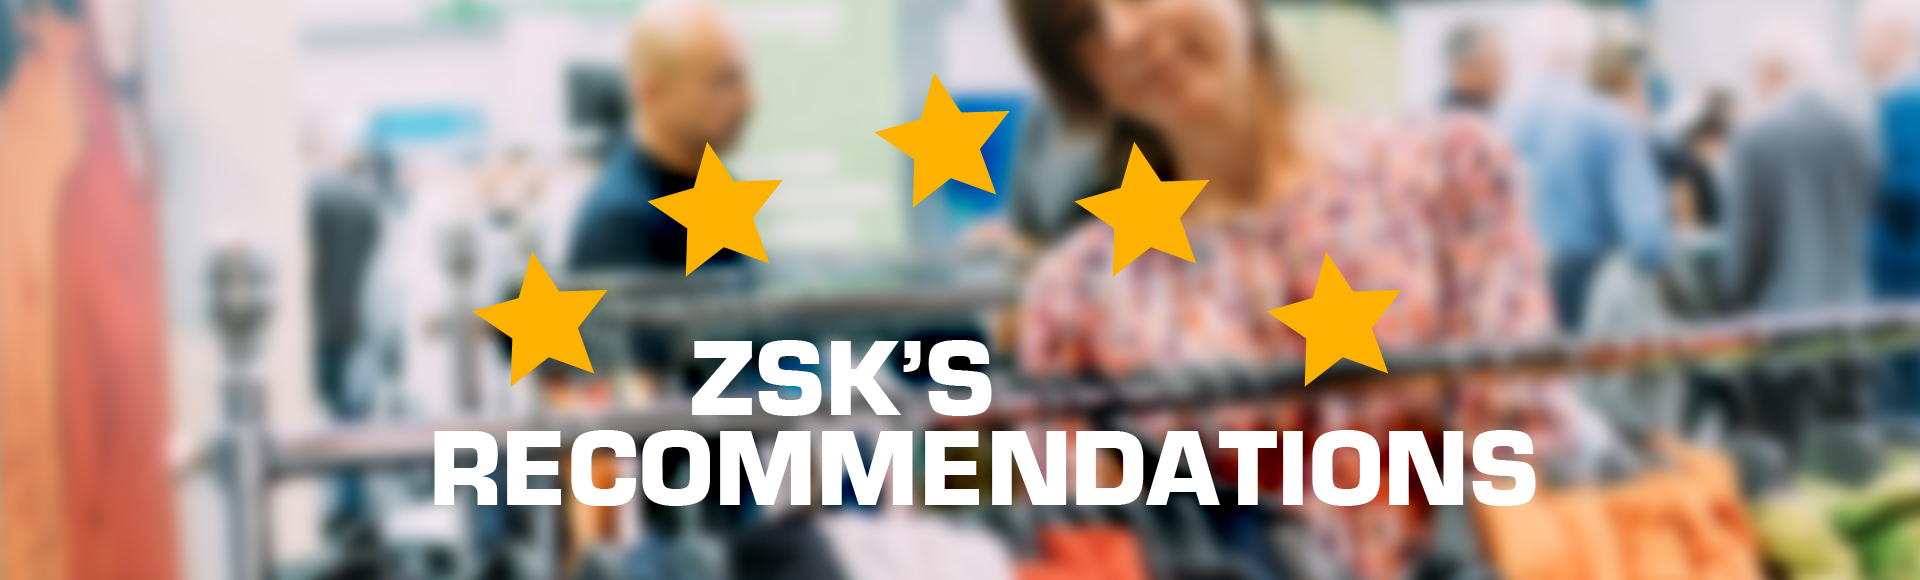 ZSK STICKMASCHINEN - Our recommendations for products and services related to embroidery